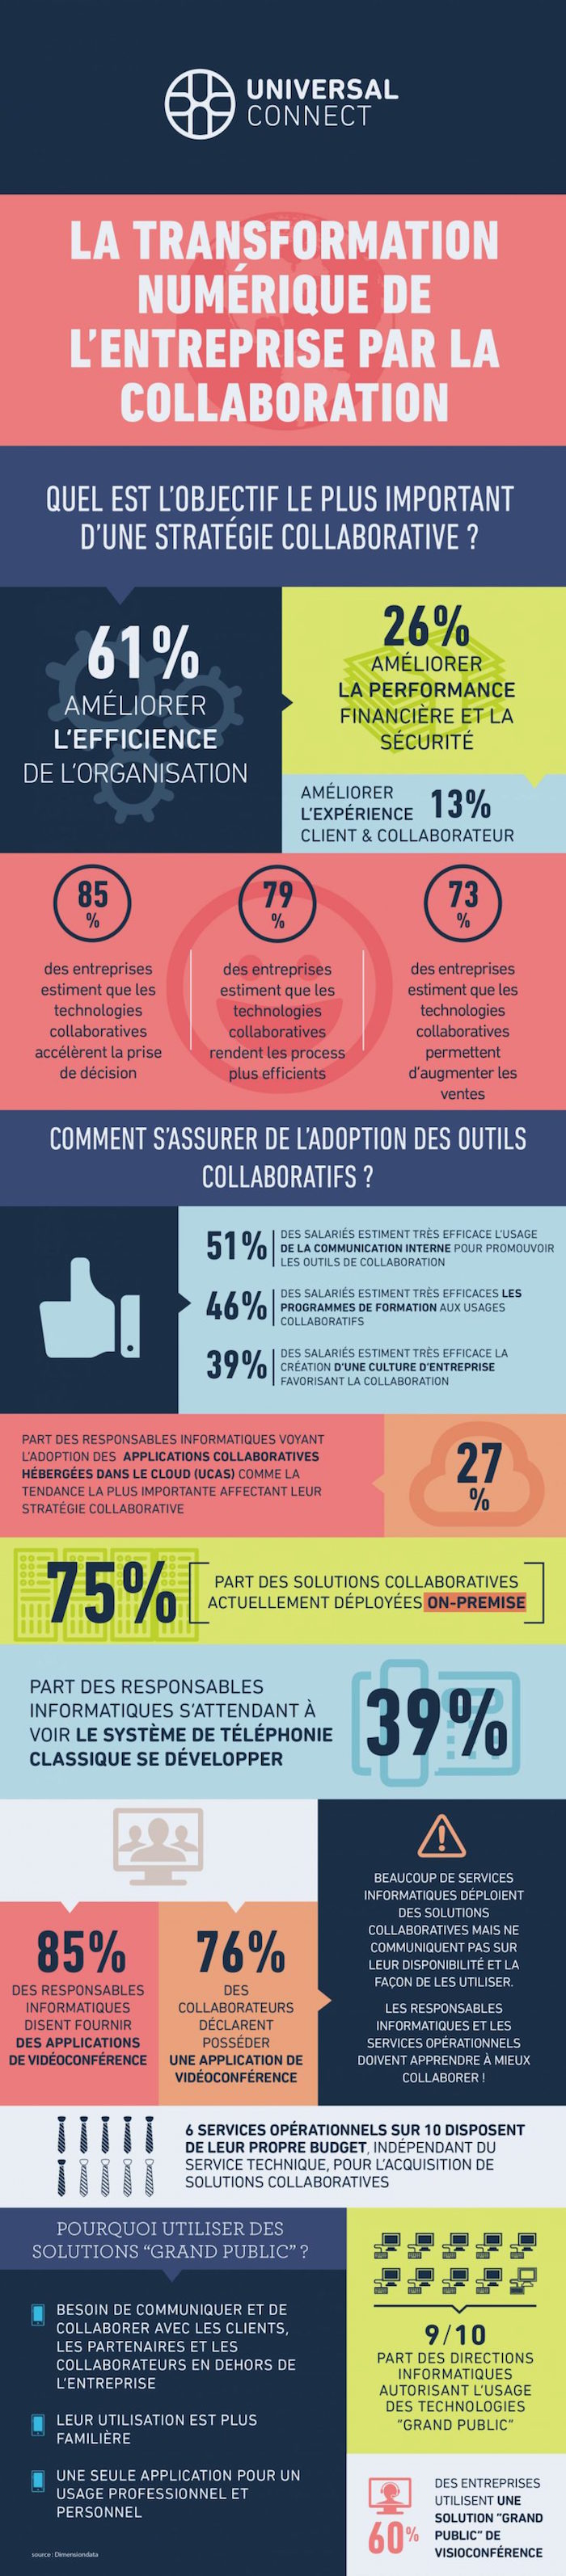 infographie-collaboration-collaborative